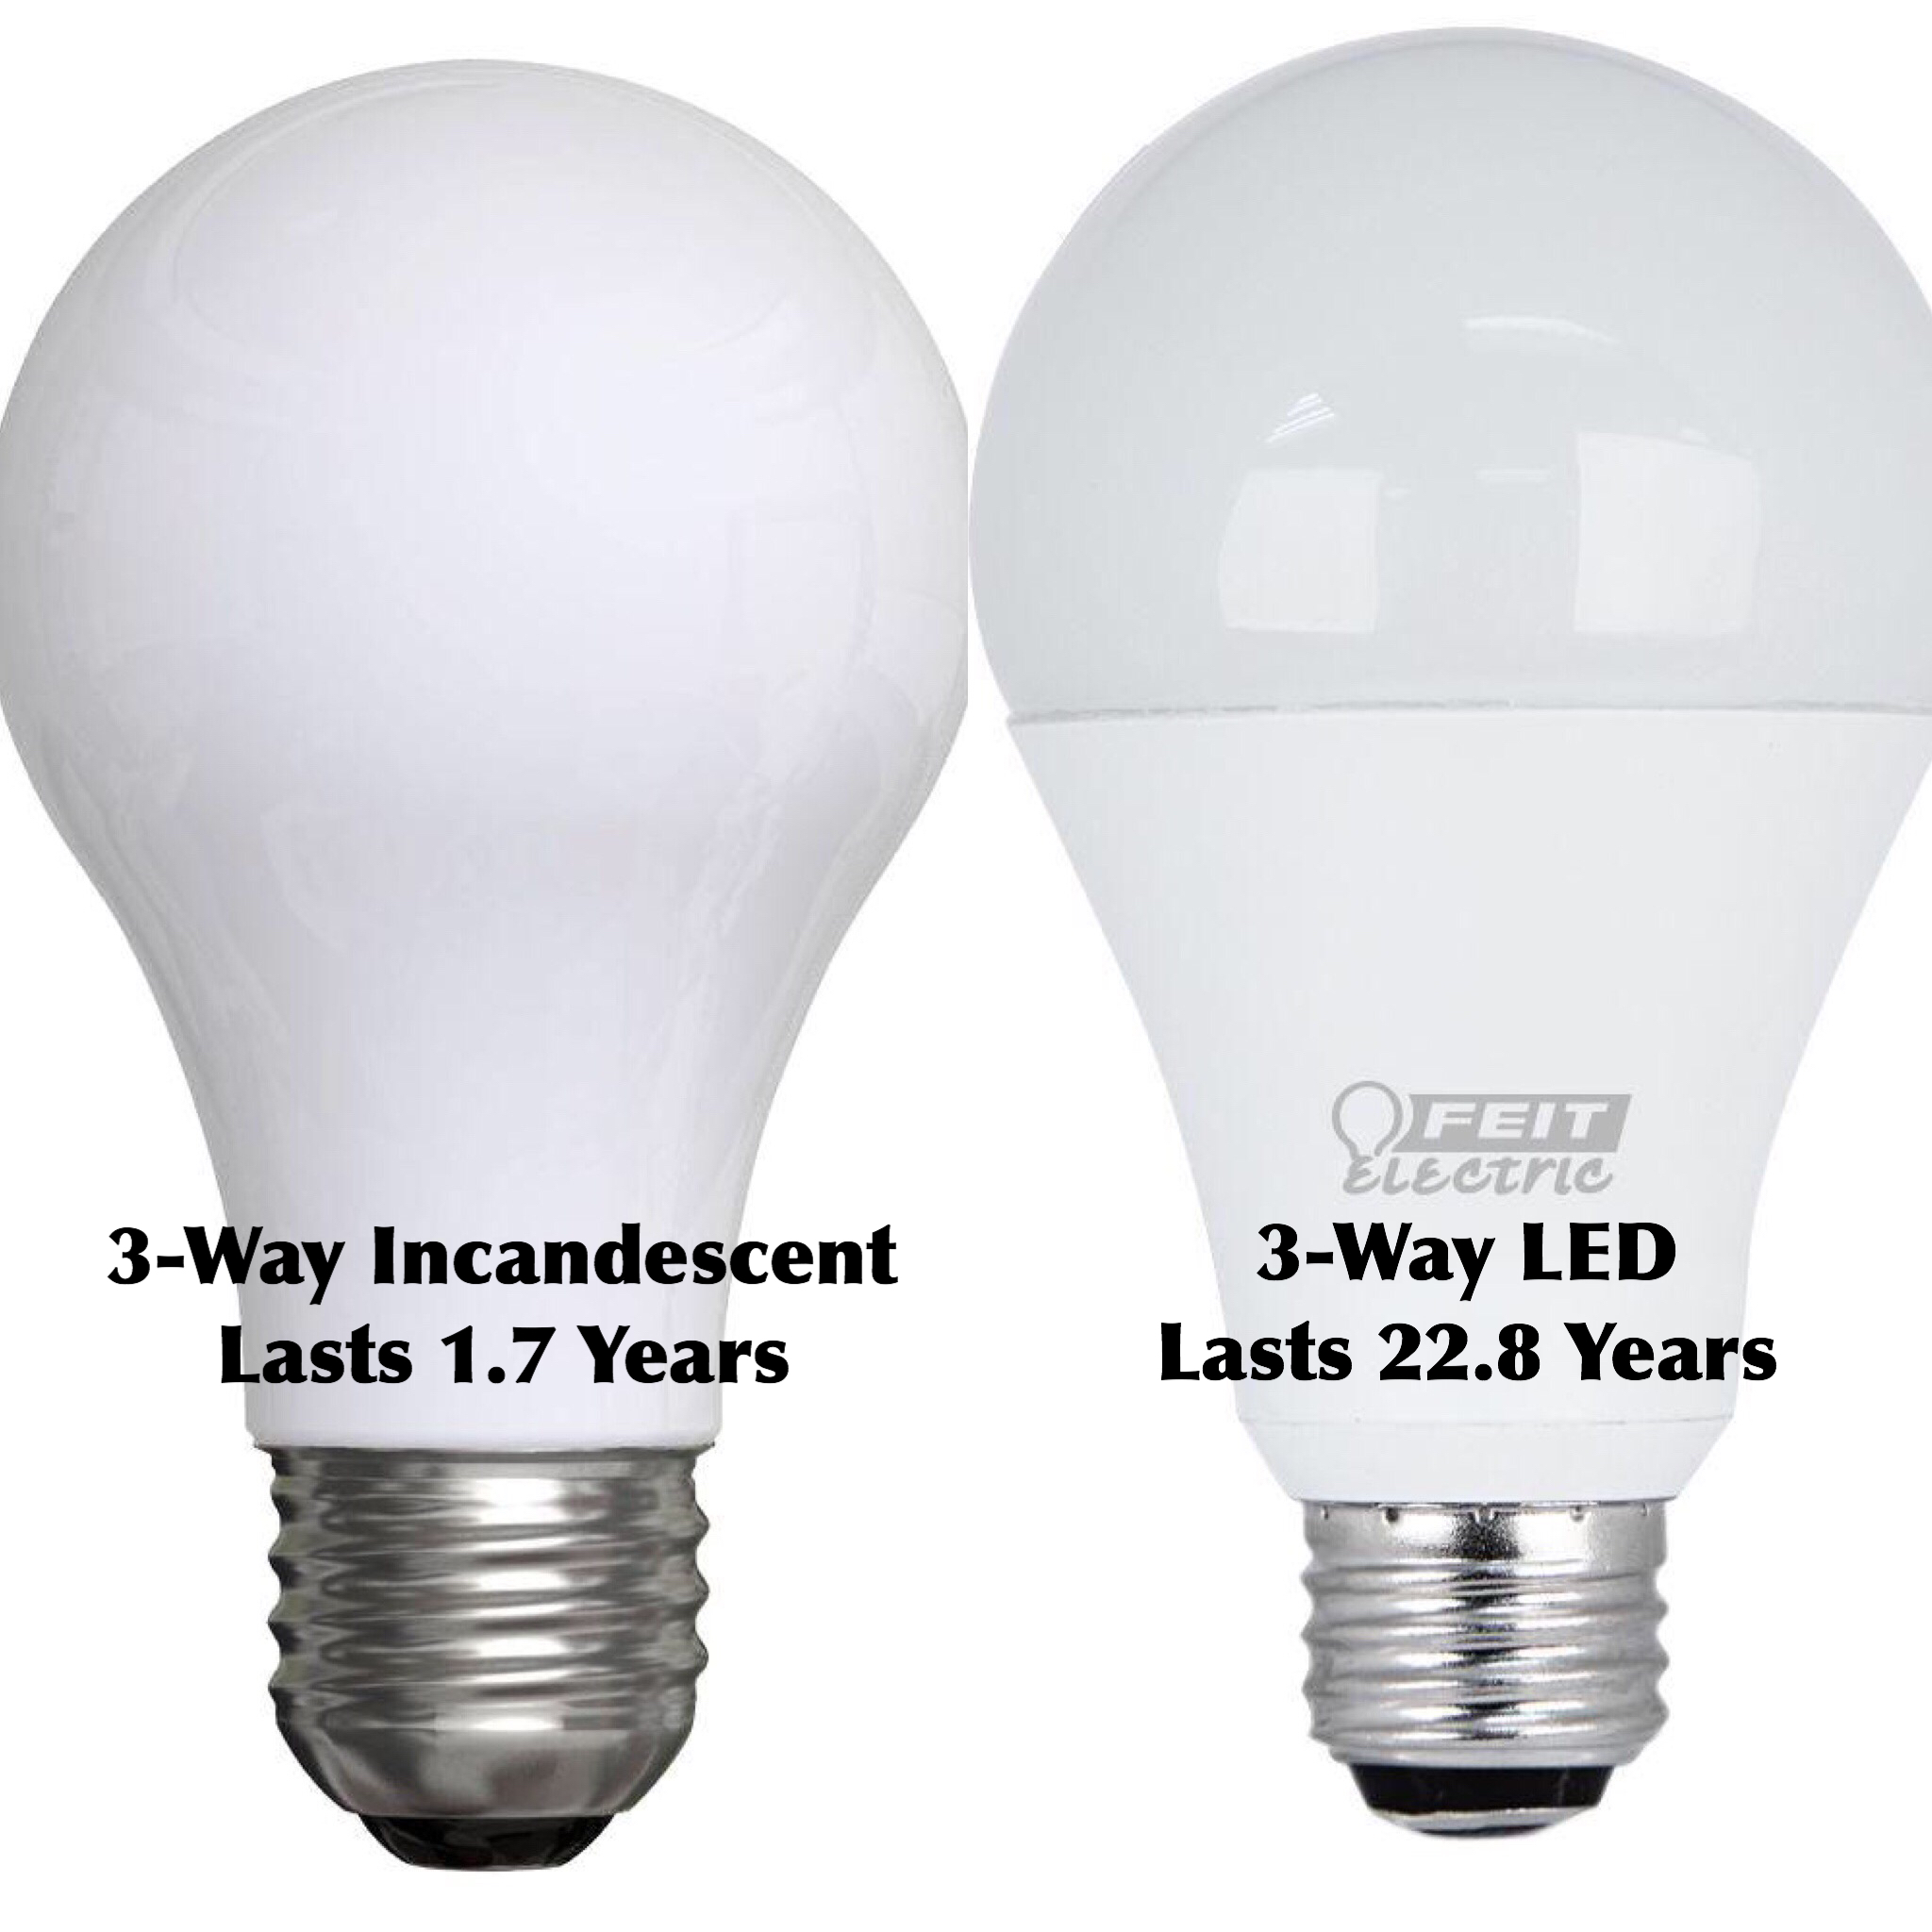 3 Way Standard Incandescent Bulbs Vs Led Bulbs Comparison